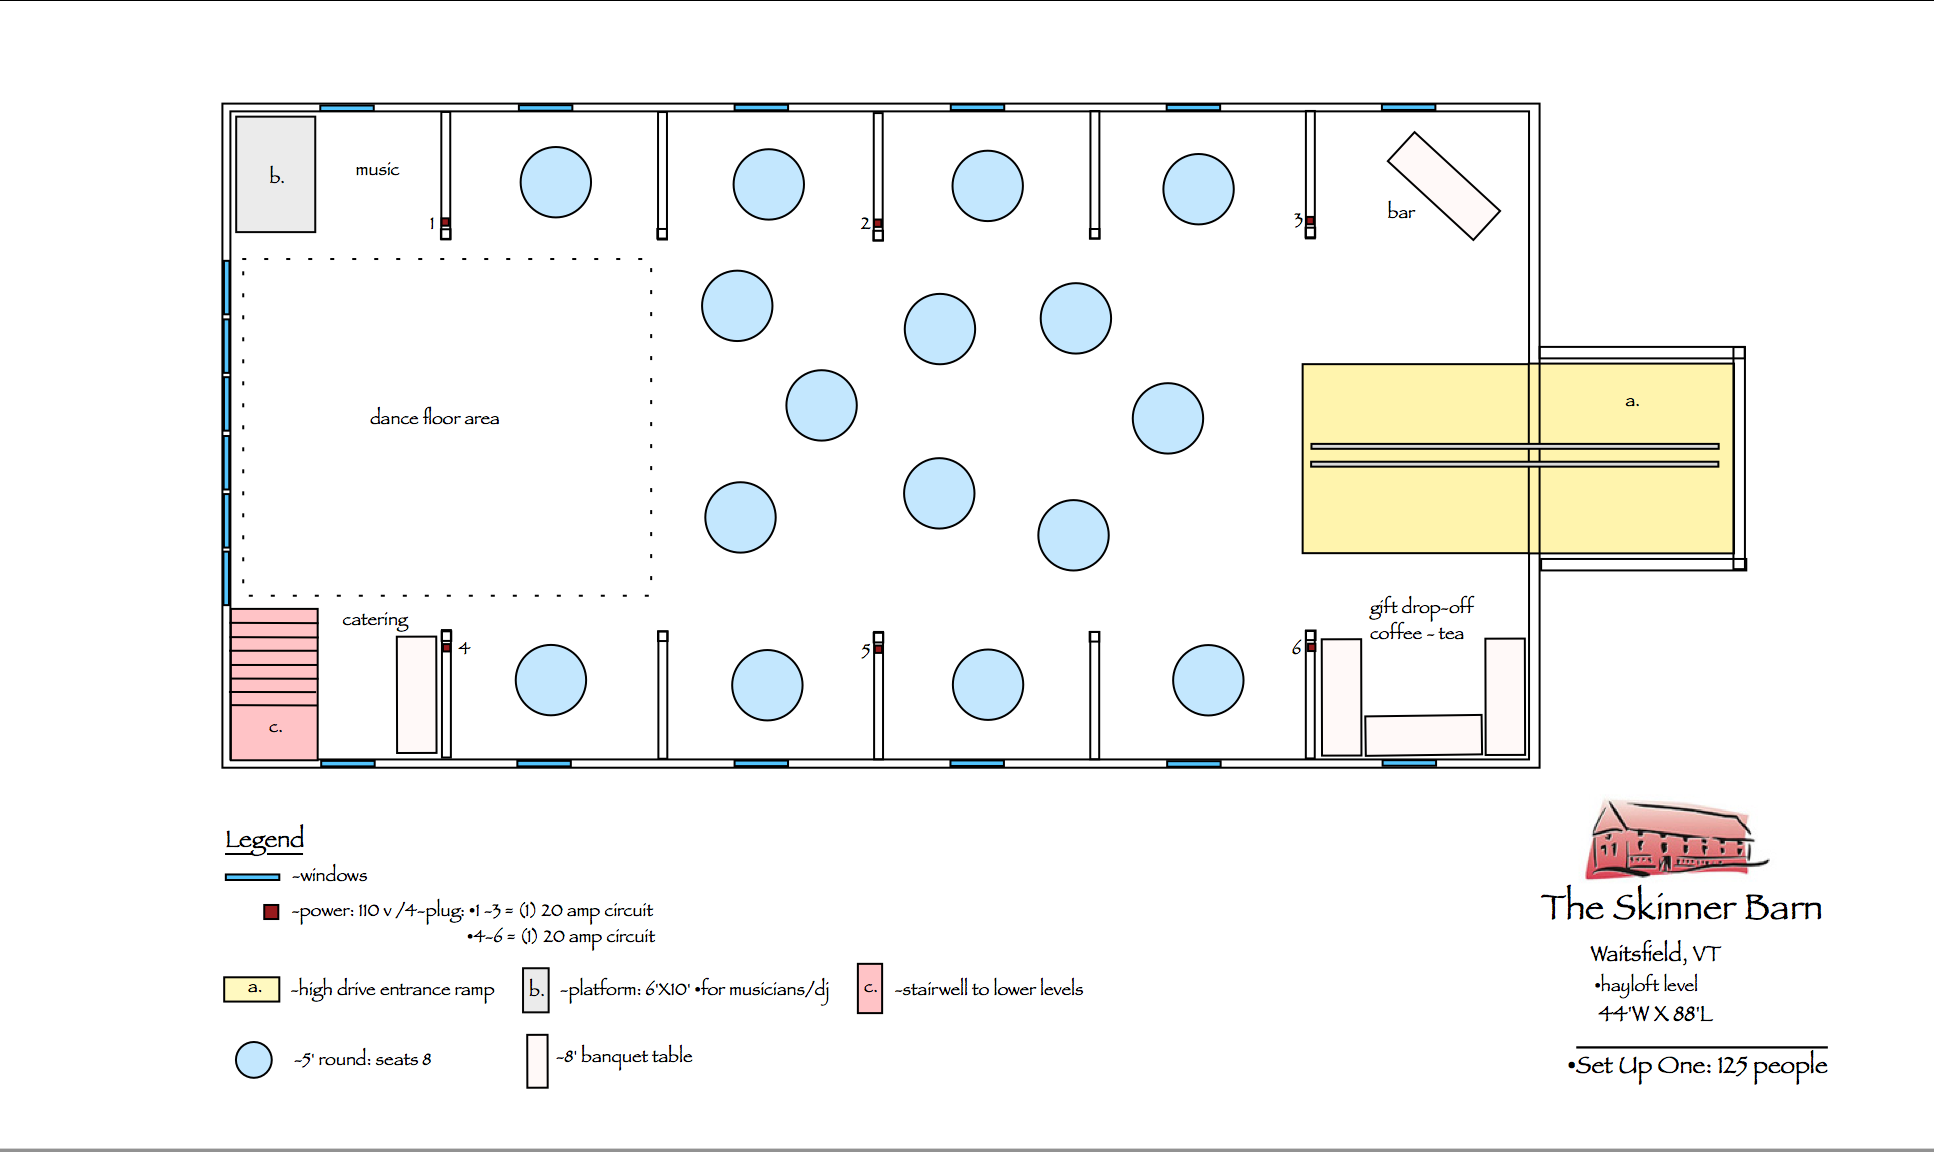 view set-up with 5' rounds